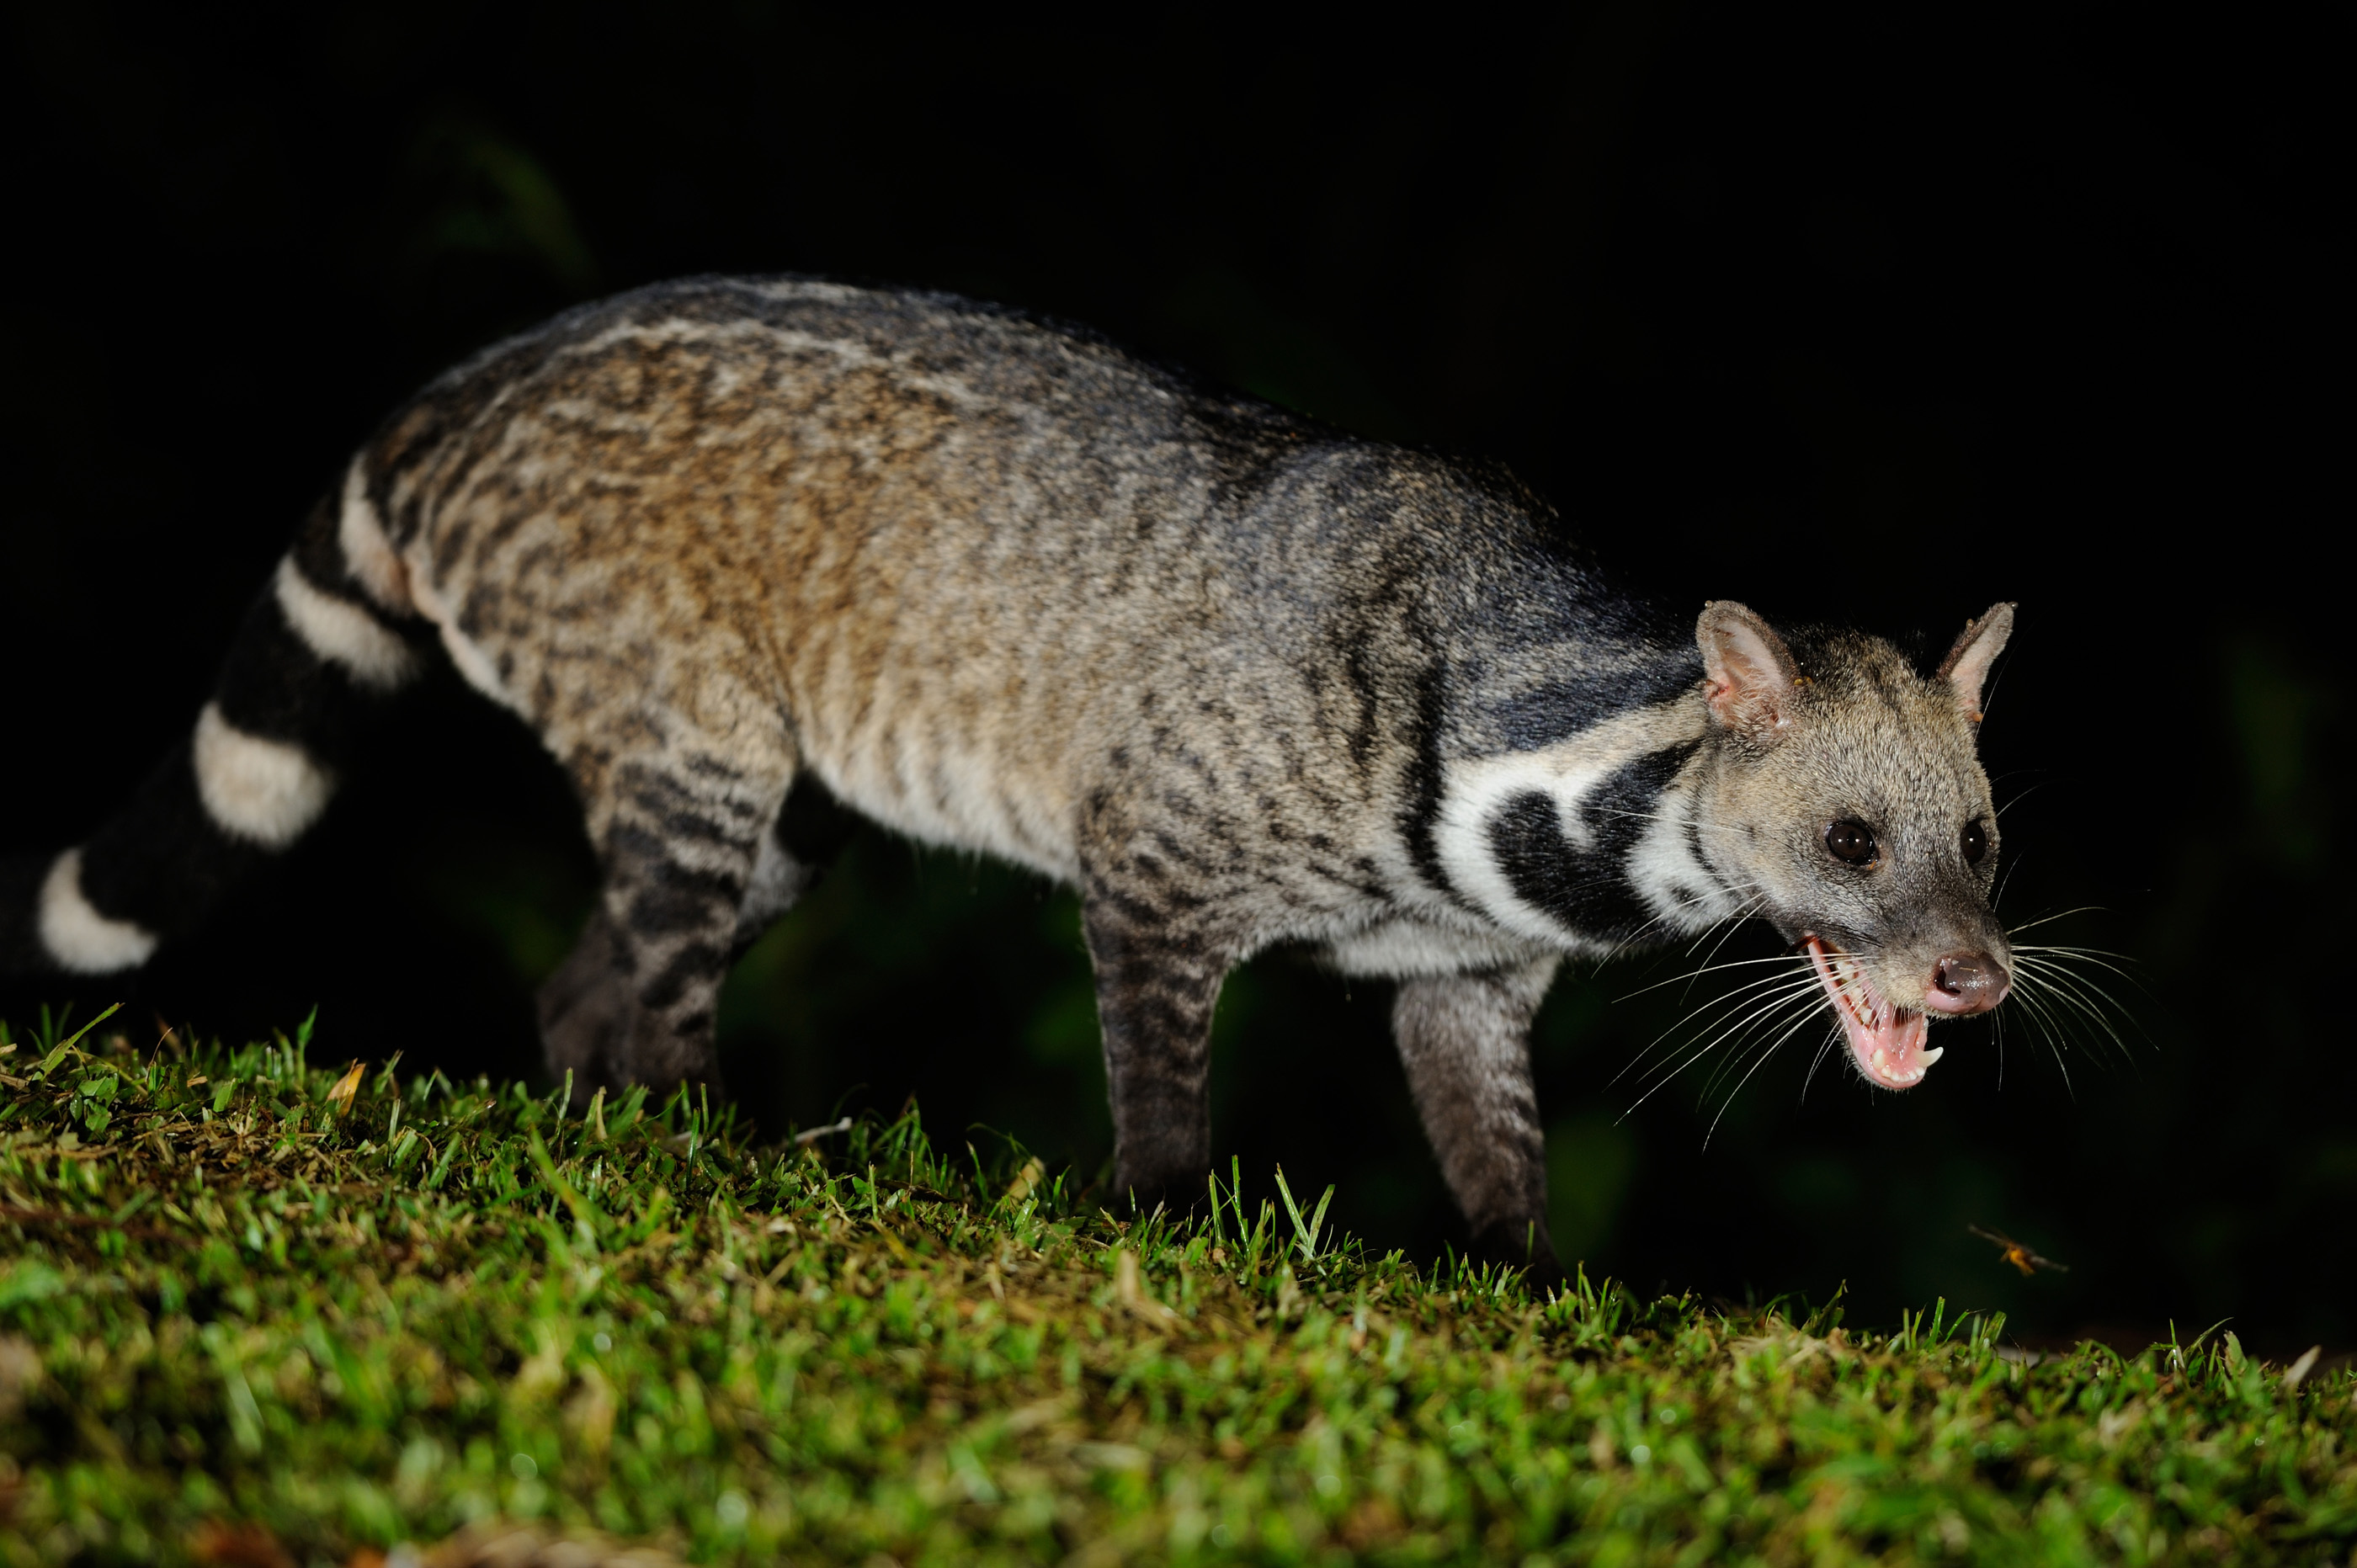 Scariest animals that only come out at night, Civet